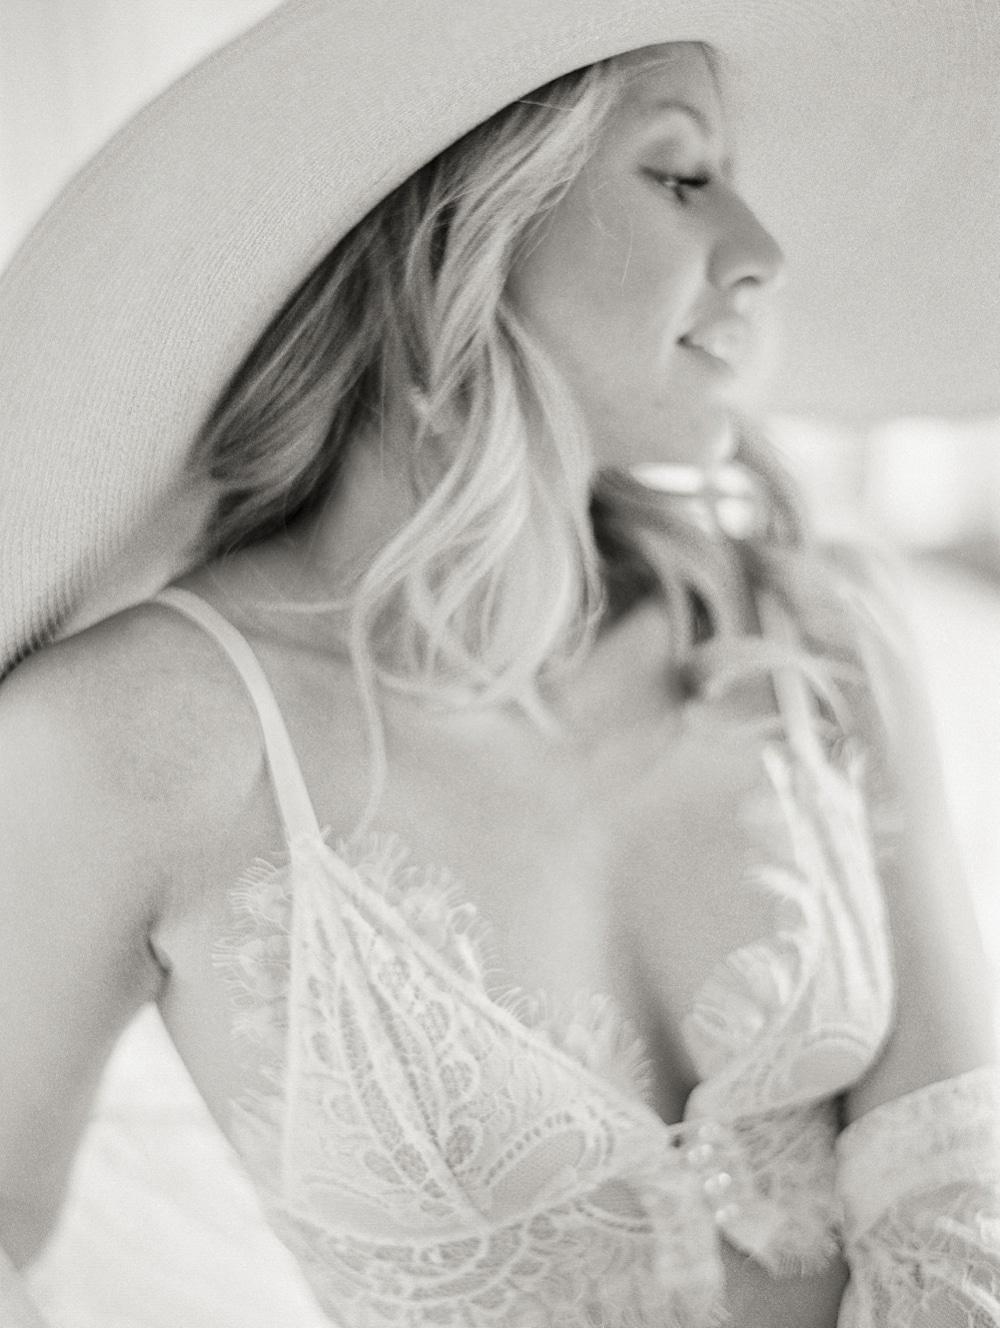 Kristin-La-Voie-Photography-fine-art-wedding-boudoir-texas-photographer-Dallas-Austin-San-Marcos-99